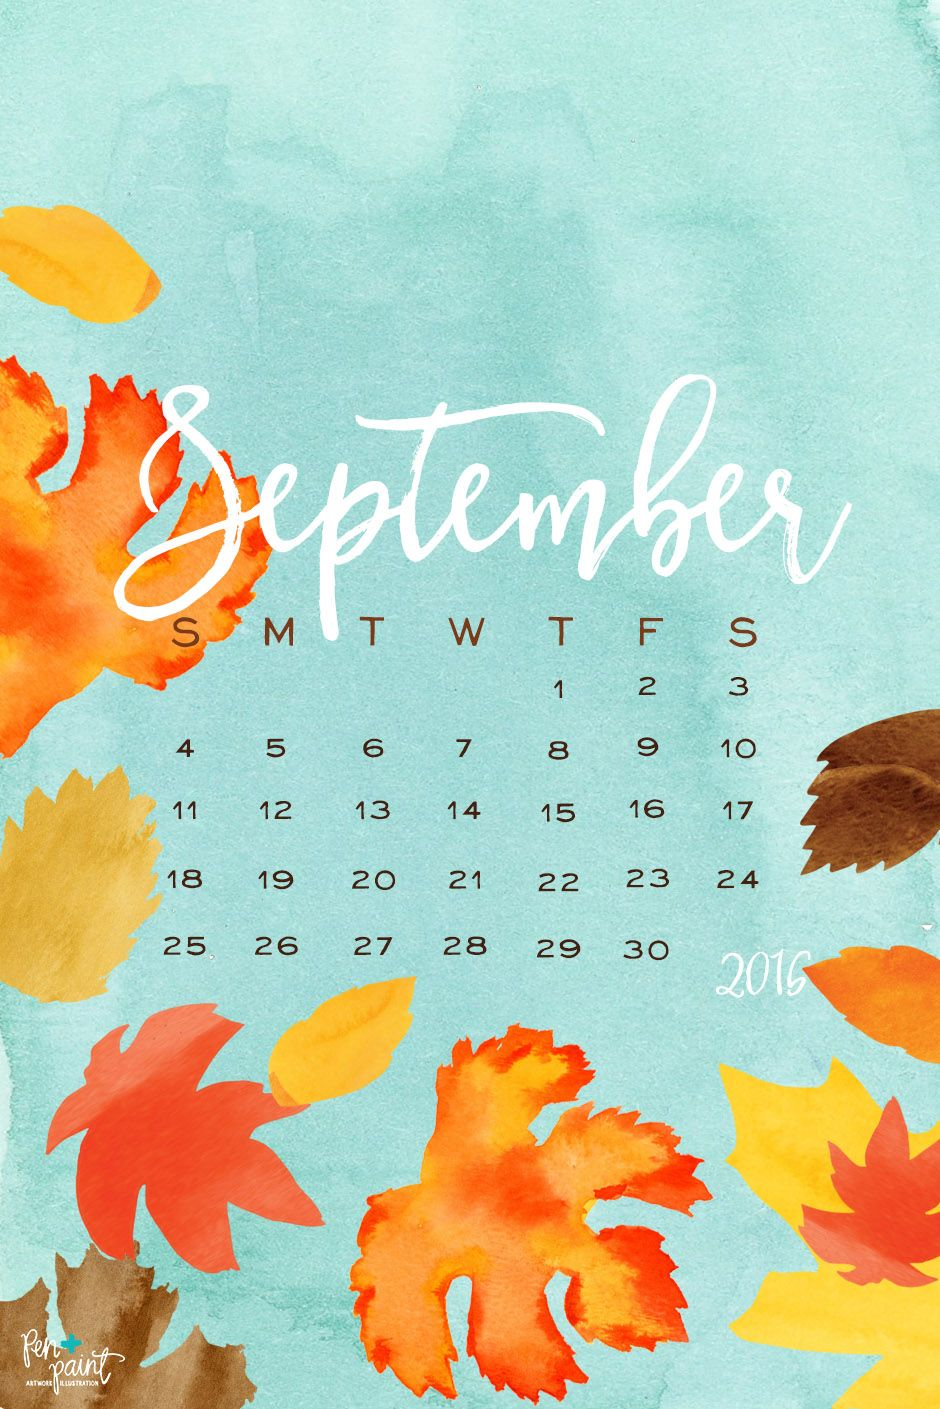 Beautiful Hello September! Iu0027m Not Going To Lie, I Have Been Anxiously Awaiting This  Month And The Arrival Of Fall. Iu0027m Ready For Cooler Temps, A Trip To The  Pumpkin ...